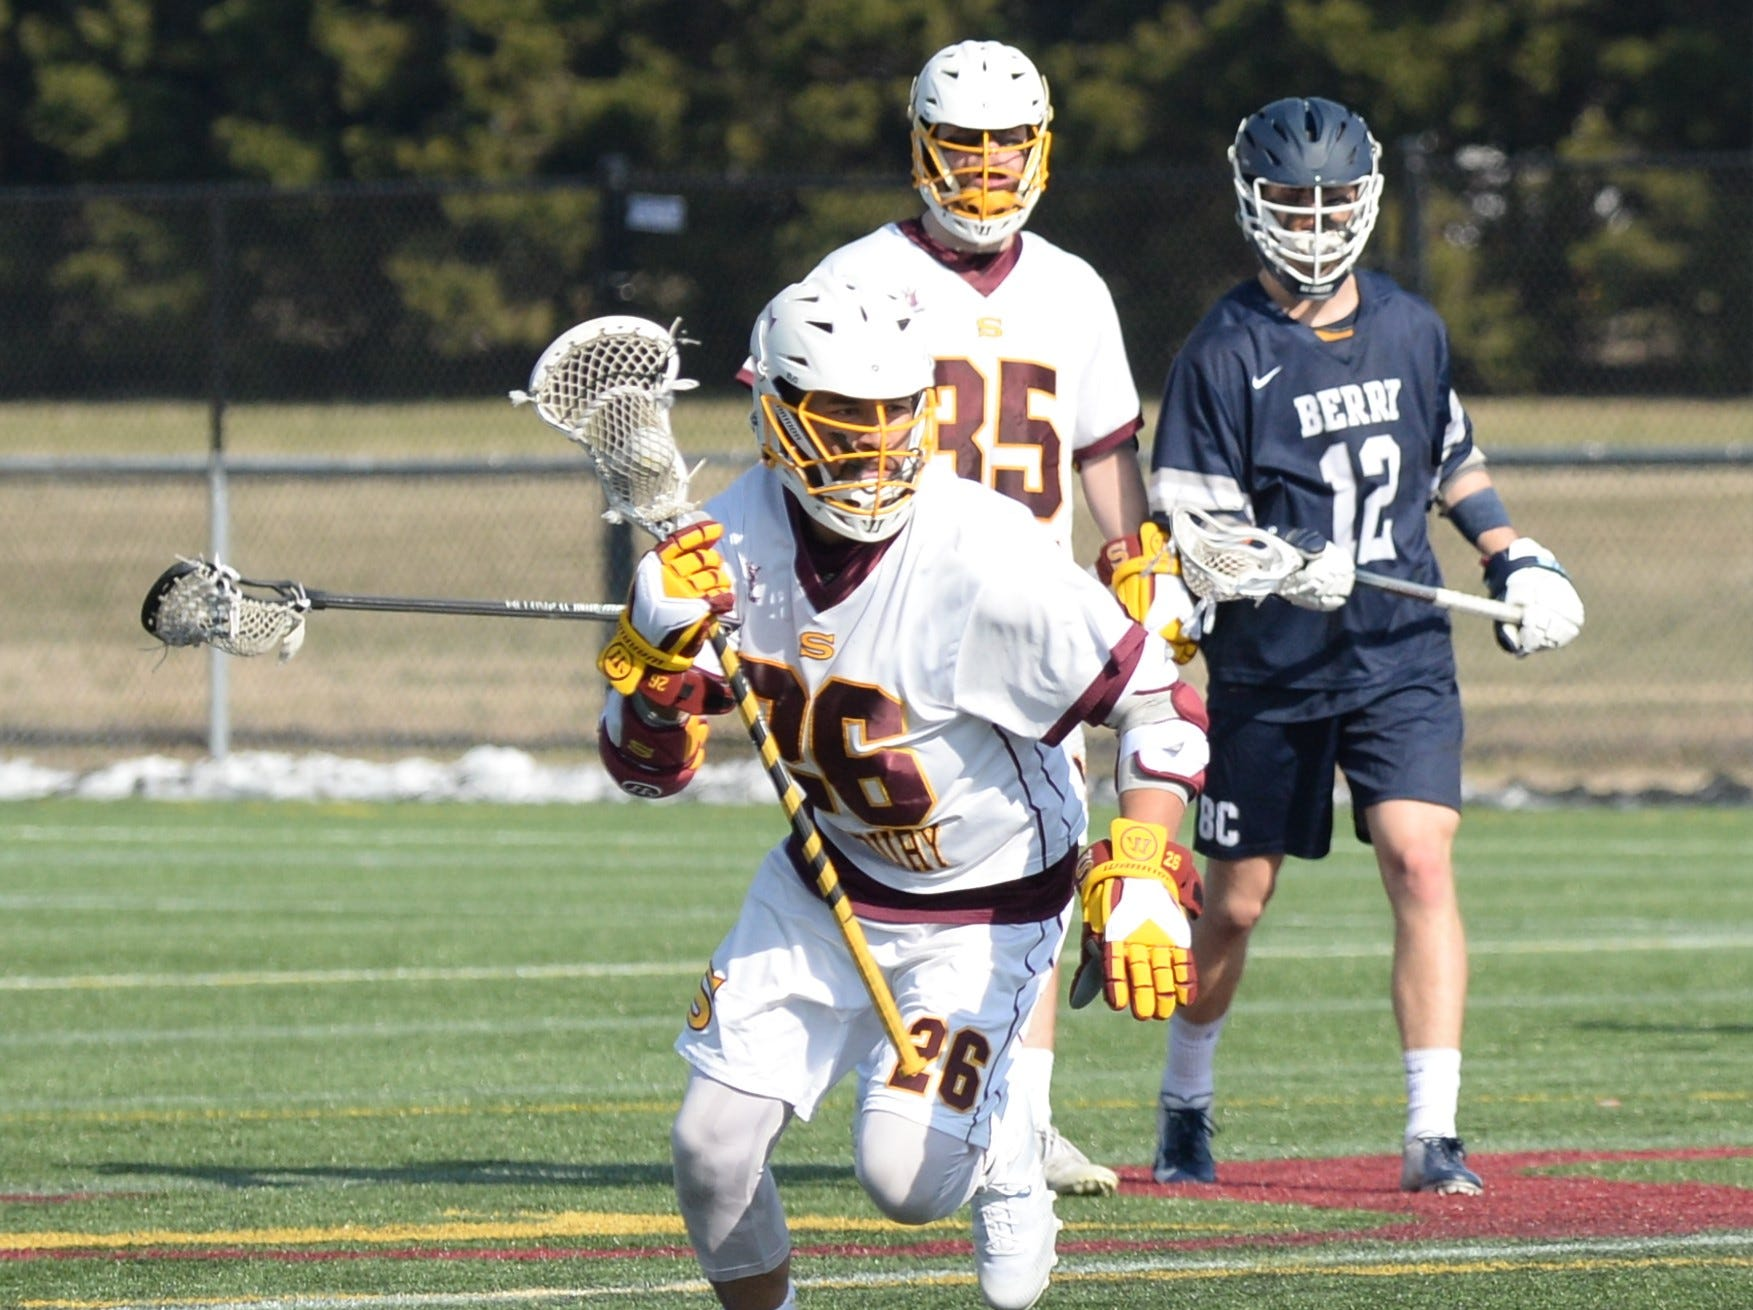 Salisbury University's Austin Short takes the ball up field against Berry College on Sunday, Feb. 3, 2019.